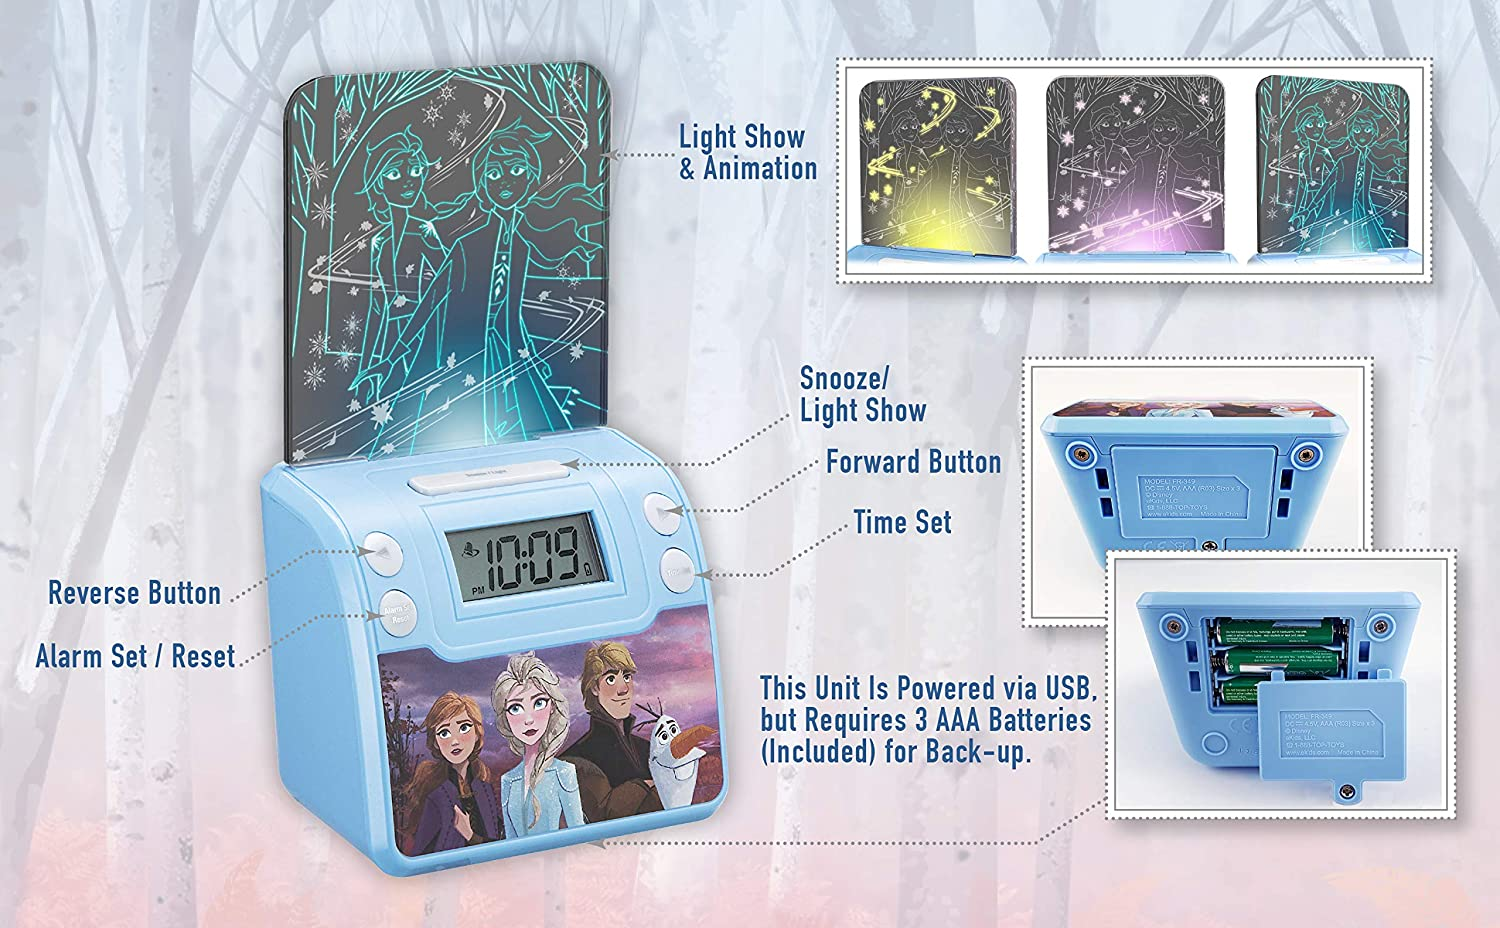 Battery Backup Nightlight LED Light Show Animations Alarm Clocks for Kids Bedrooms USB Charger Frozen 2 Digital Alarm Clock with Night Light Snooze Wake to Buzzer